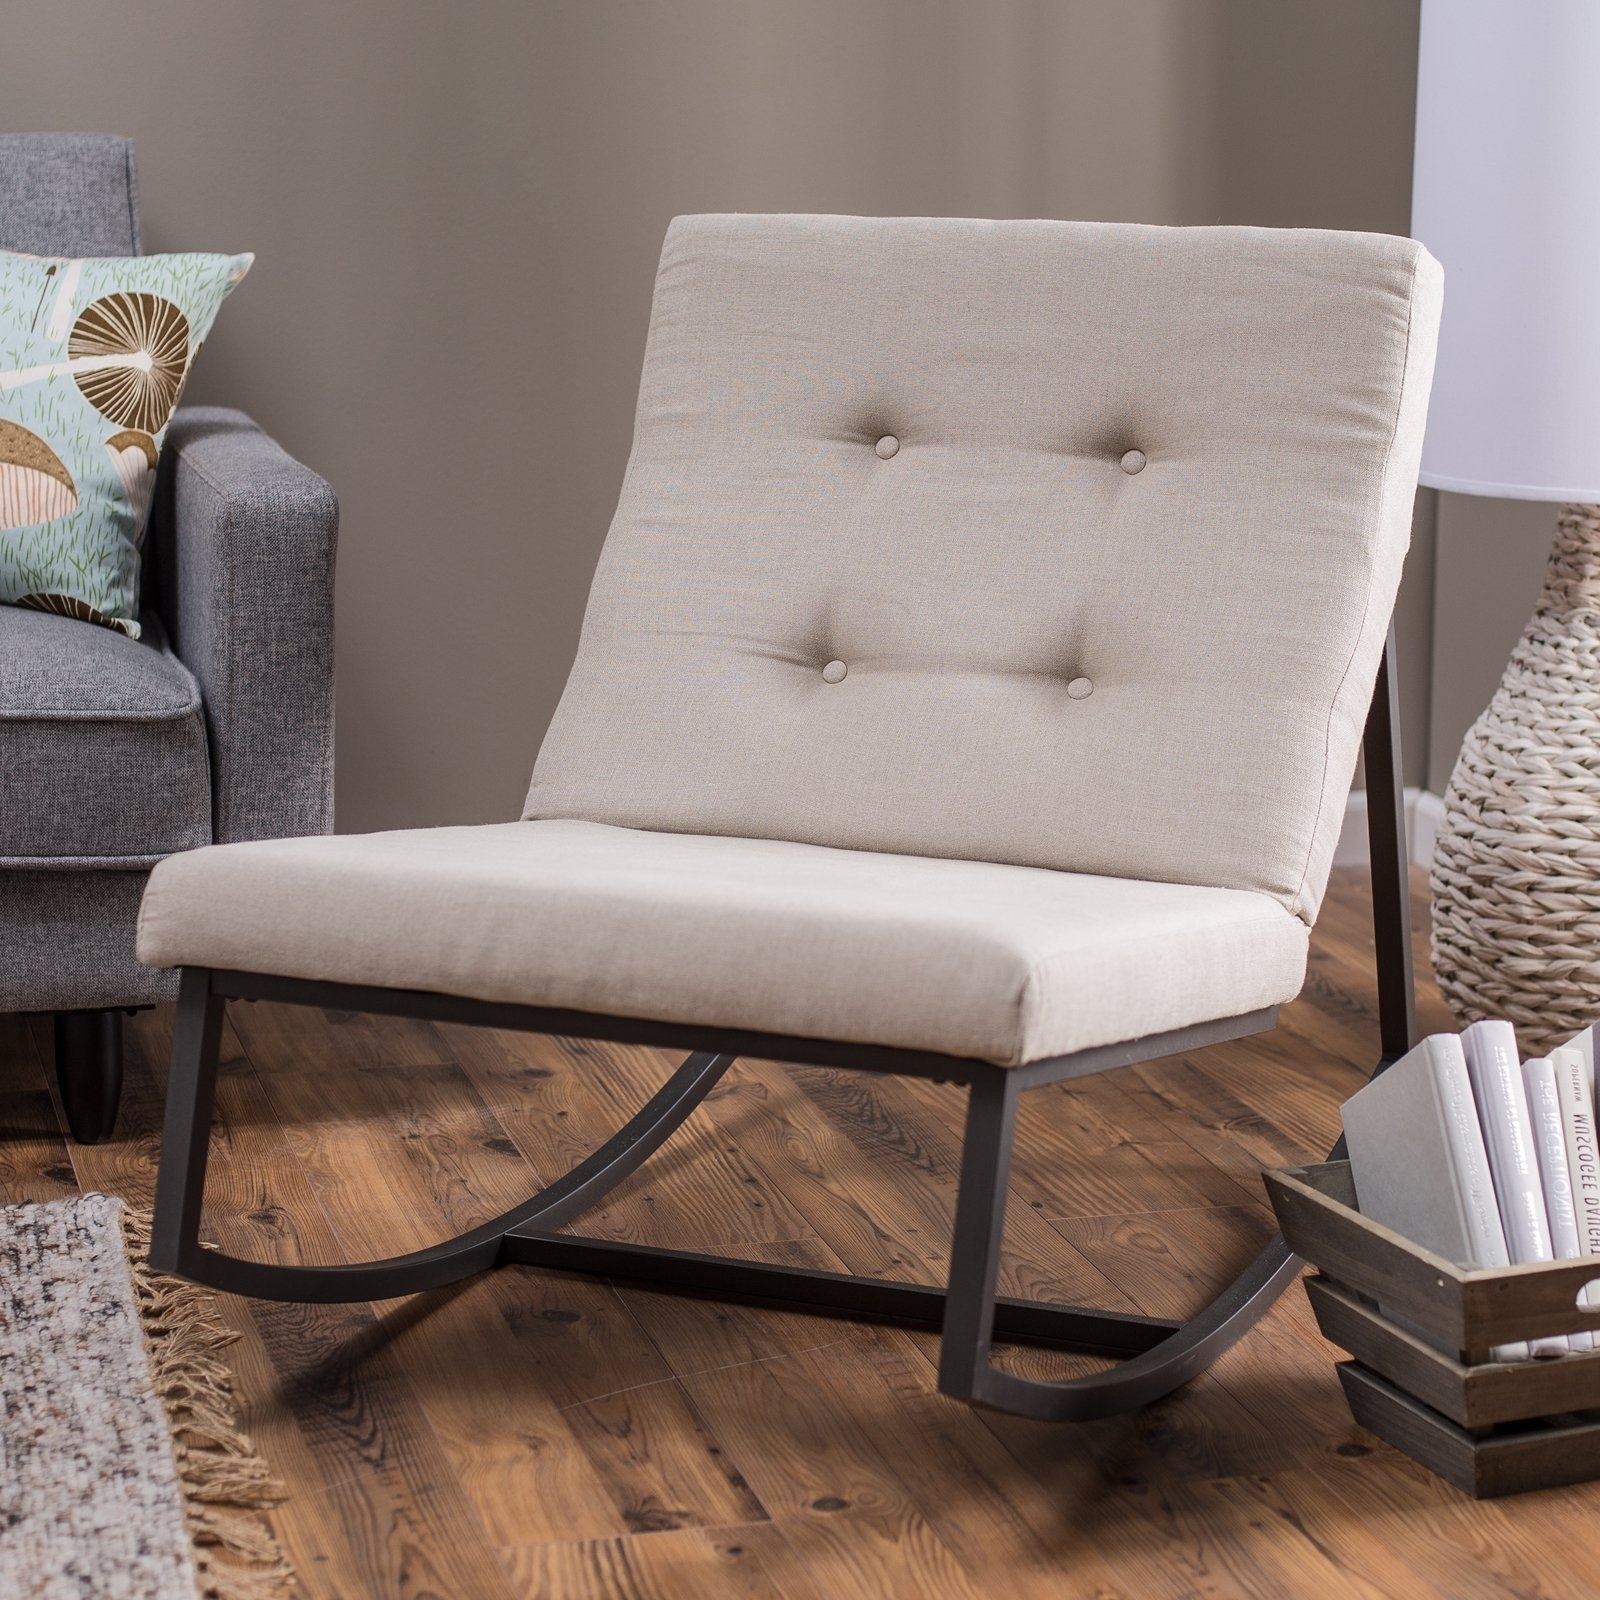 Belham Living Grayson Tufted Rocking Chair (View 4 of 15)